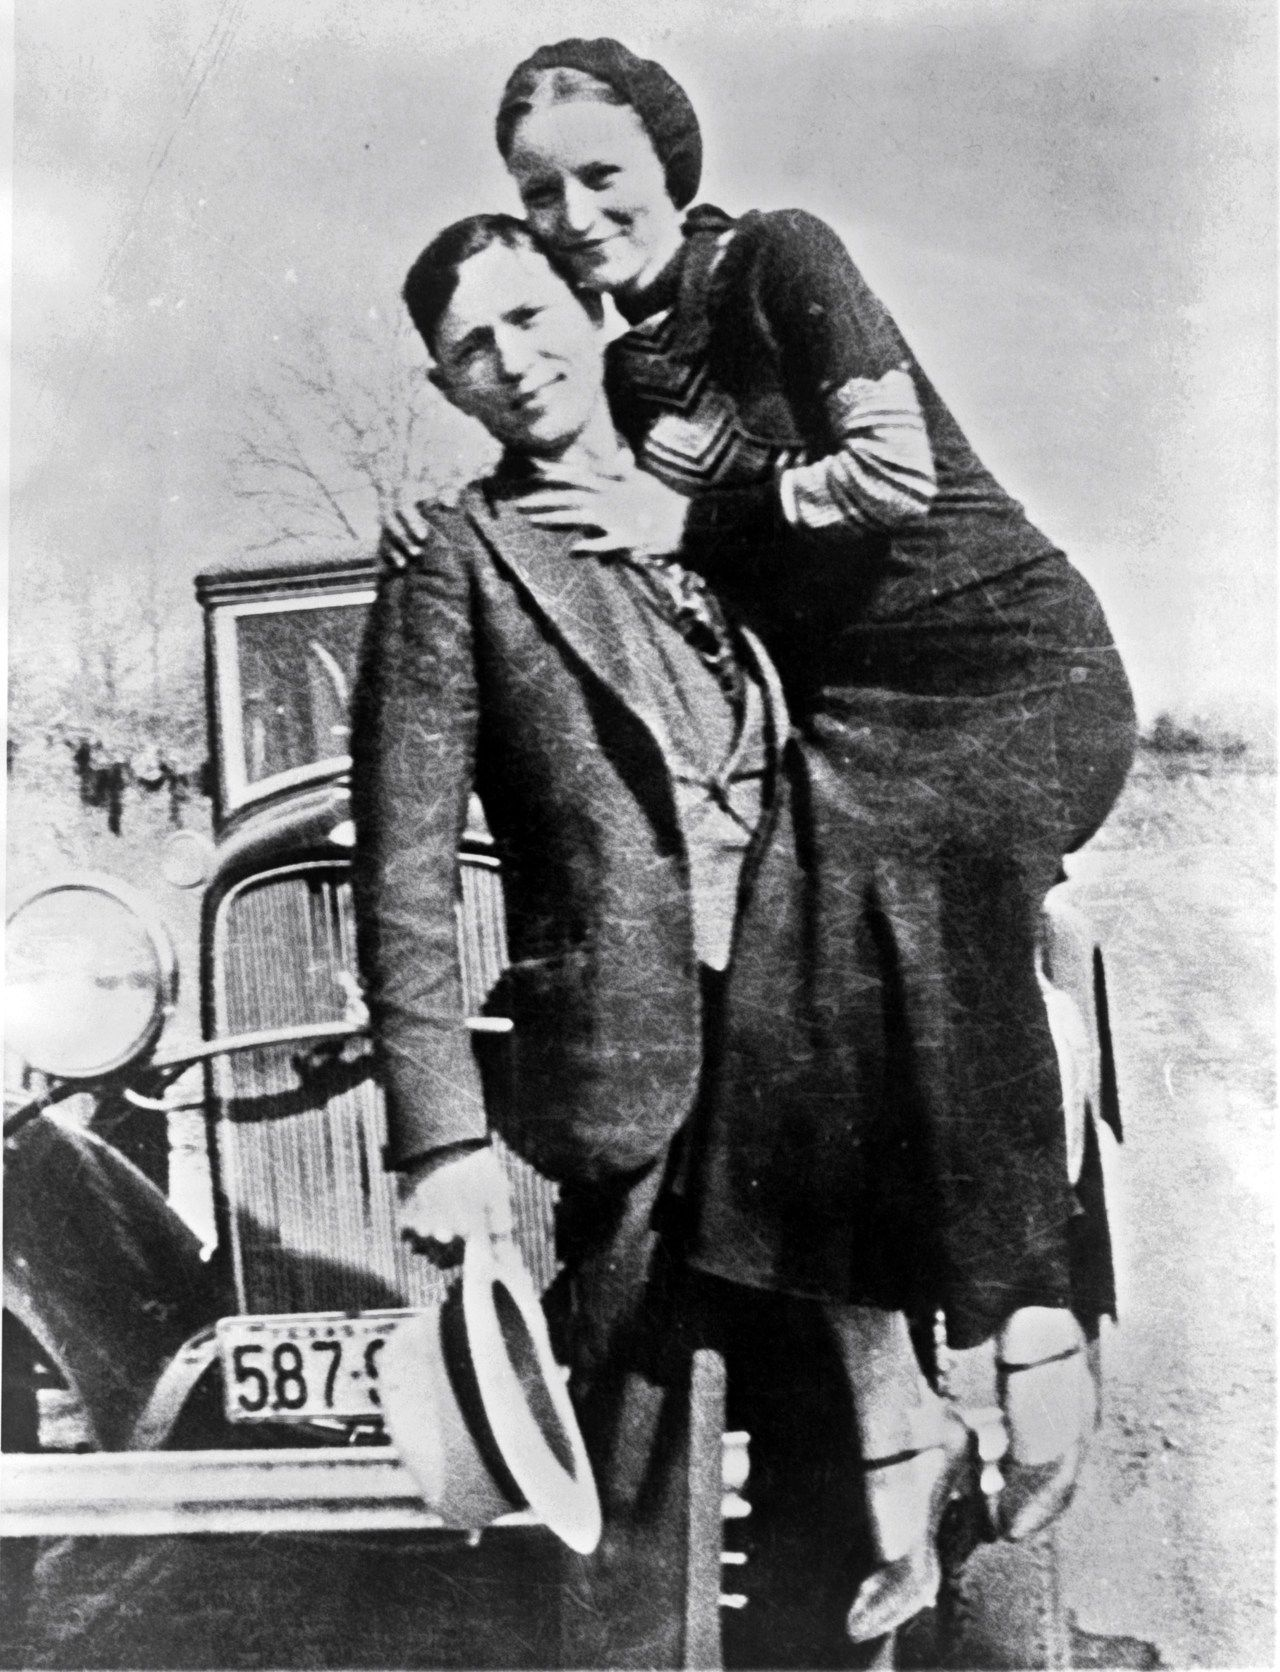 Bonnie and Clyde in March 1933, in a photo found by police at the Joplin, Missouri hideout.